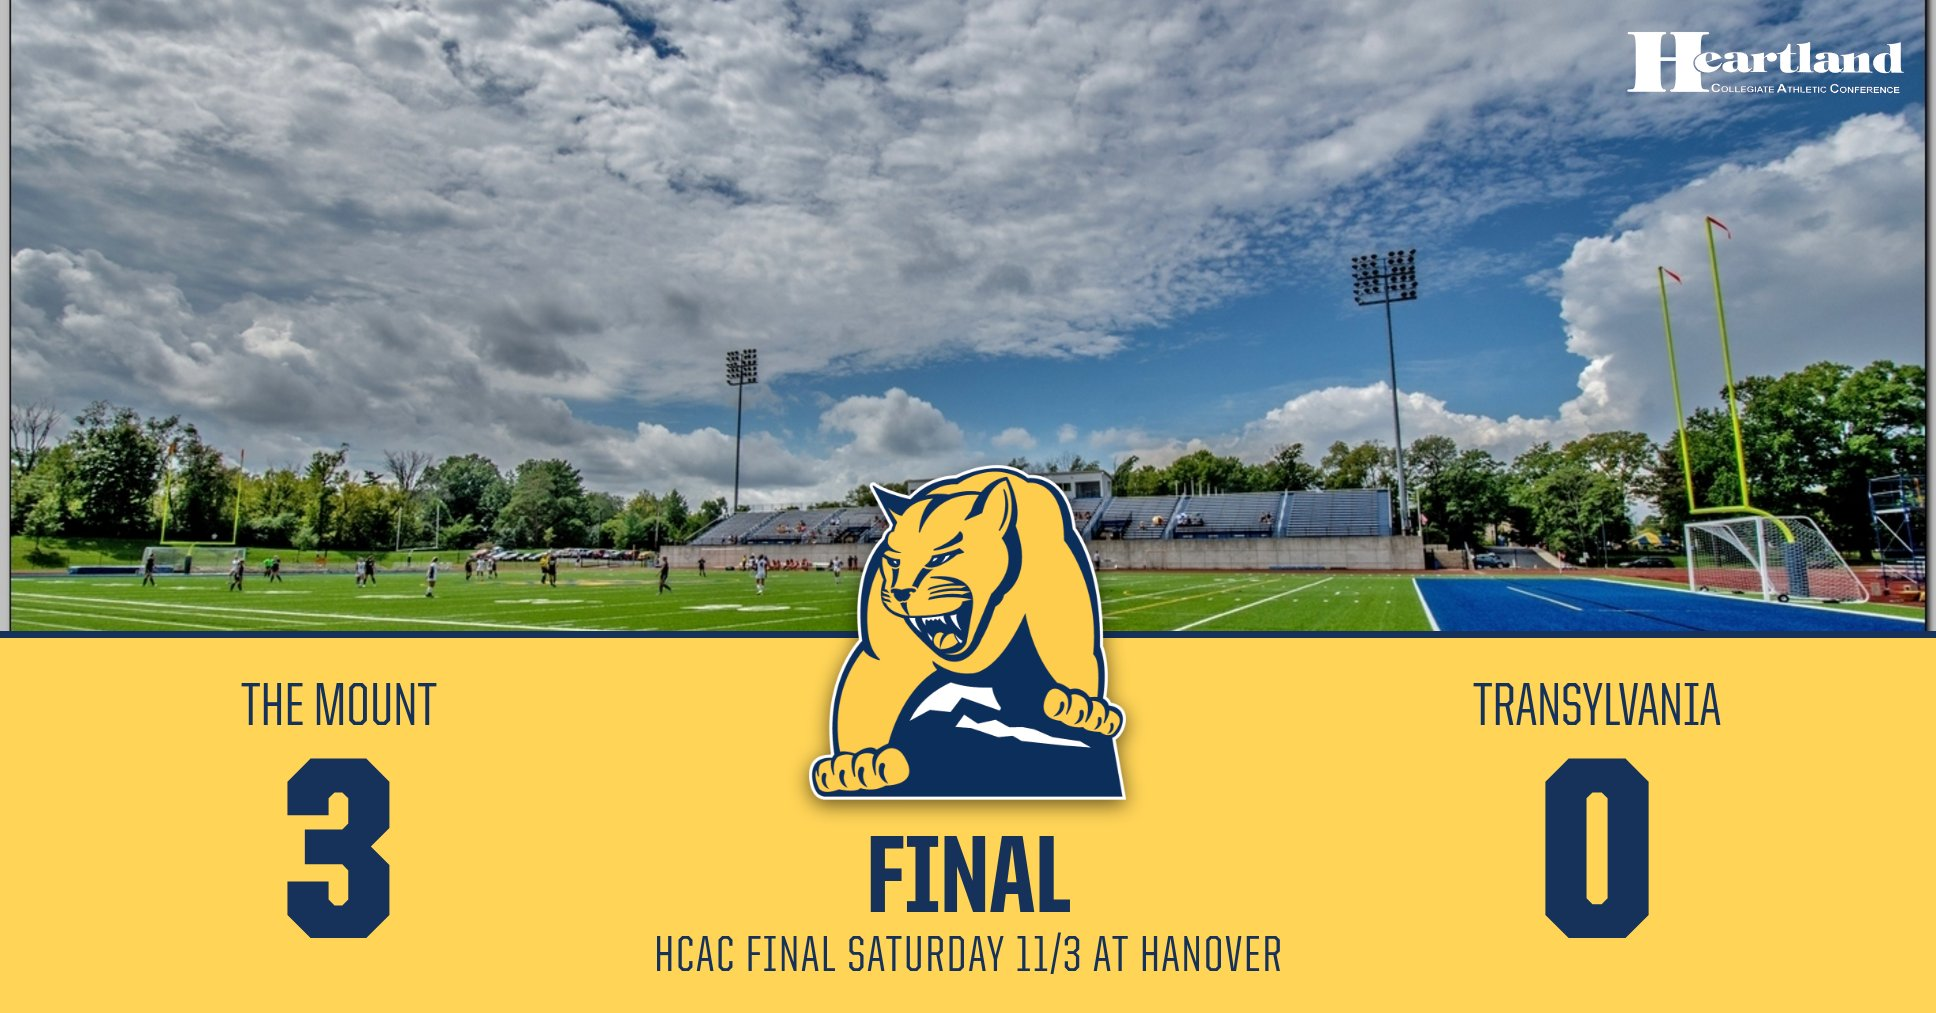 The Mount defeats Transy in semi-final, rematch with No. 14 Hanover will decide HCAC Championship